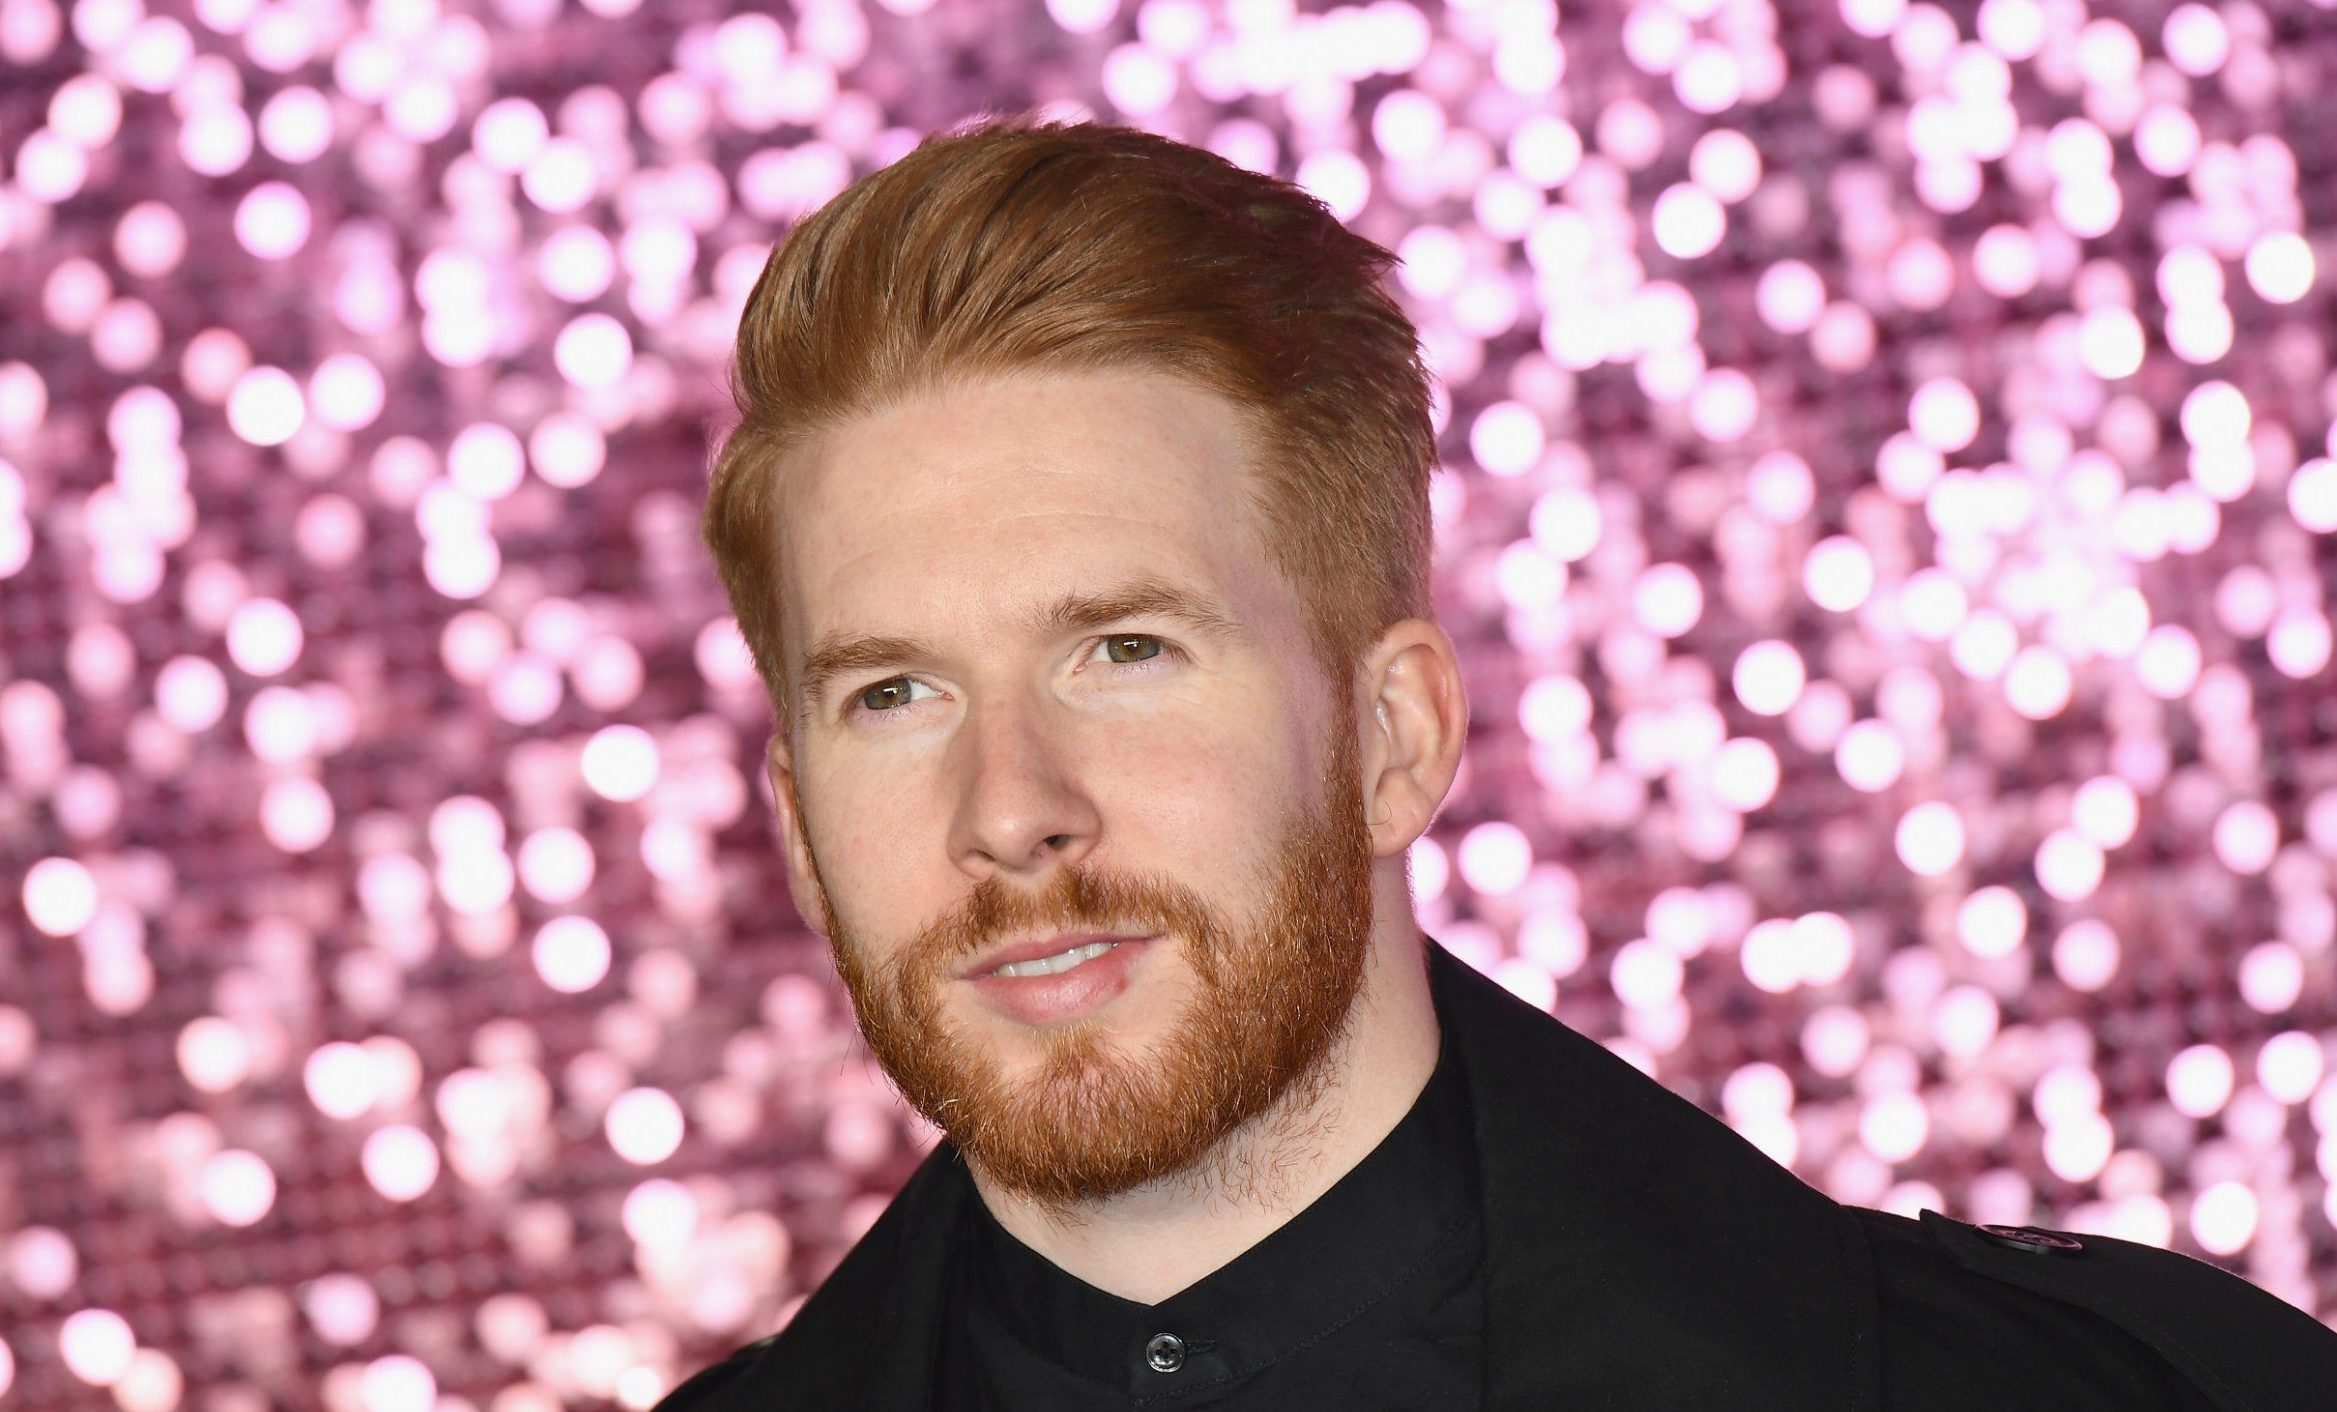 LONDON, ENGLAND - OCTOBER 23: Neil Jones attends the World Premiere of 'Bohemian Rhapsody' at SSE Arena Wembley on October 23, 2018 in London, England. (Photo by Jeff Spicer/Jeff Spicer/Getty Images for Twentieth Century Fox )